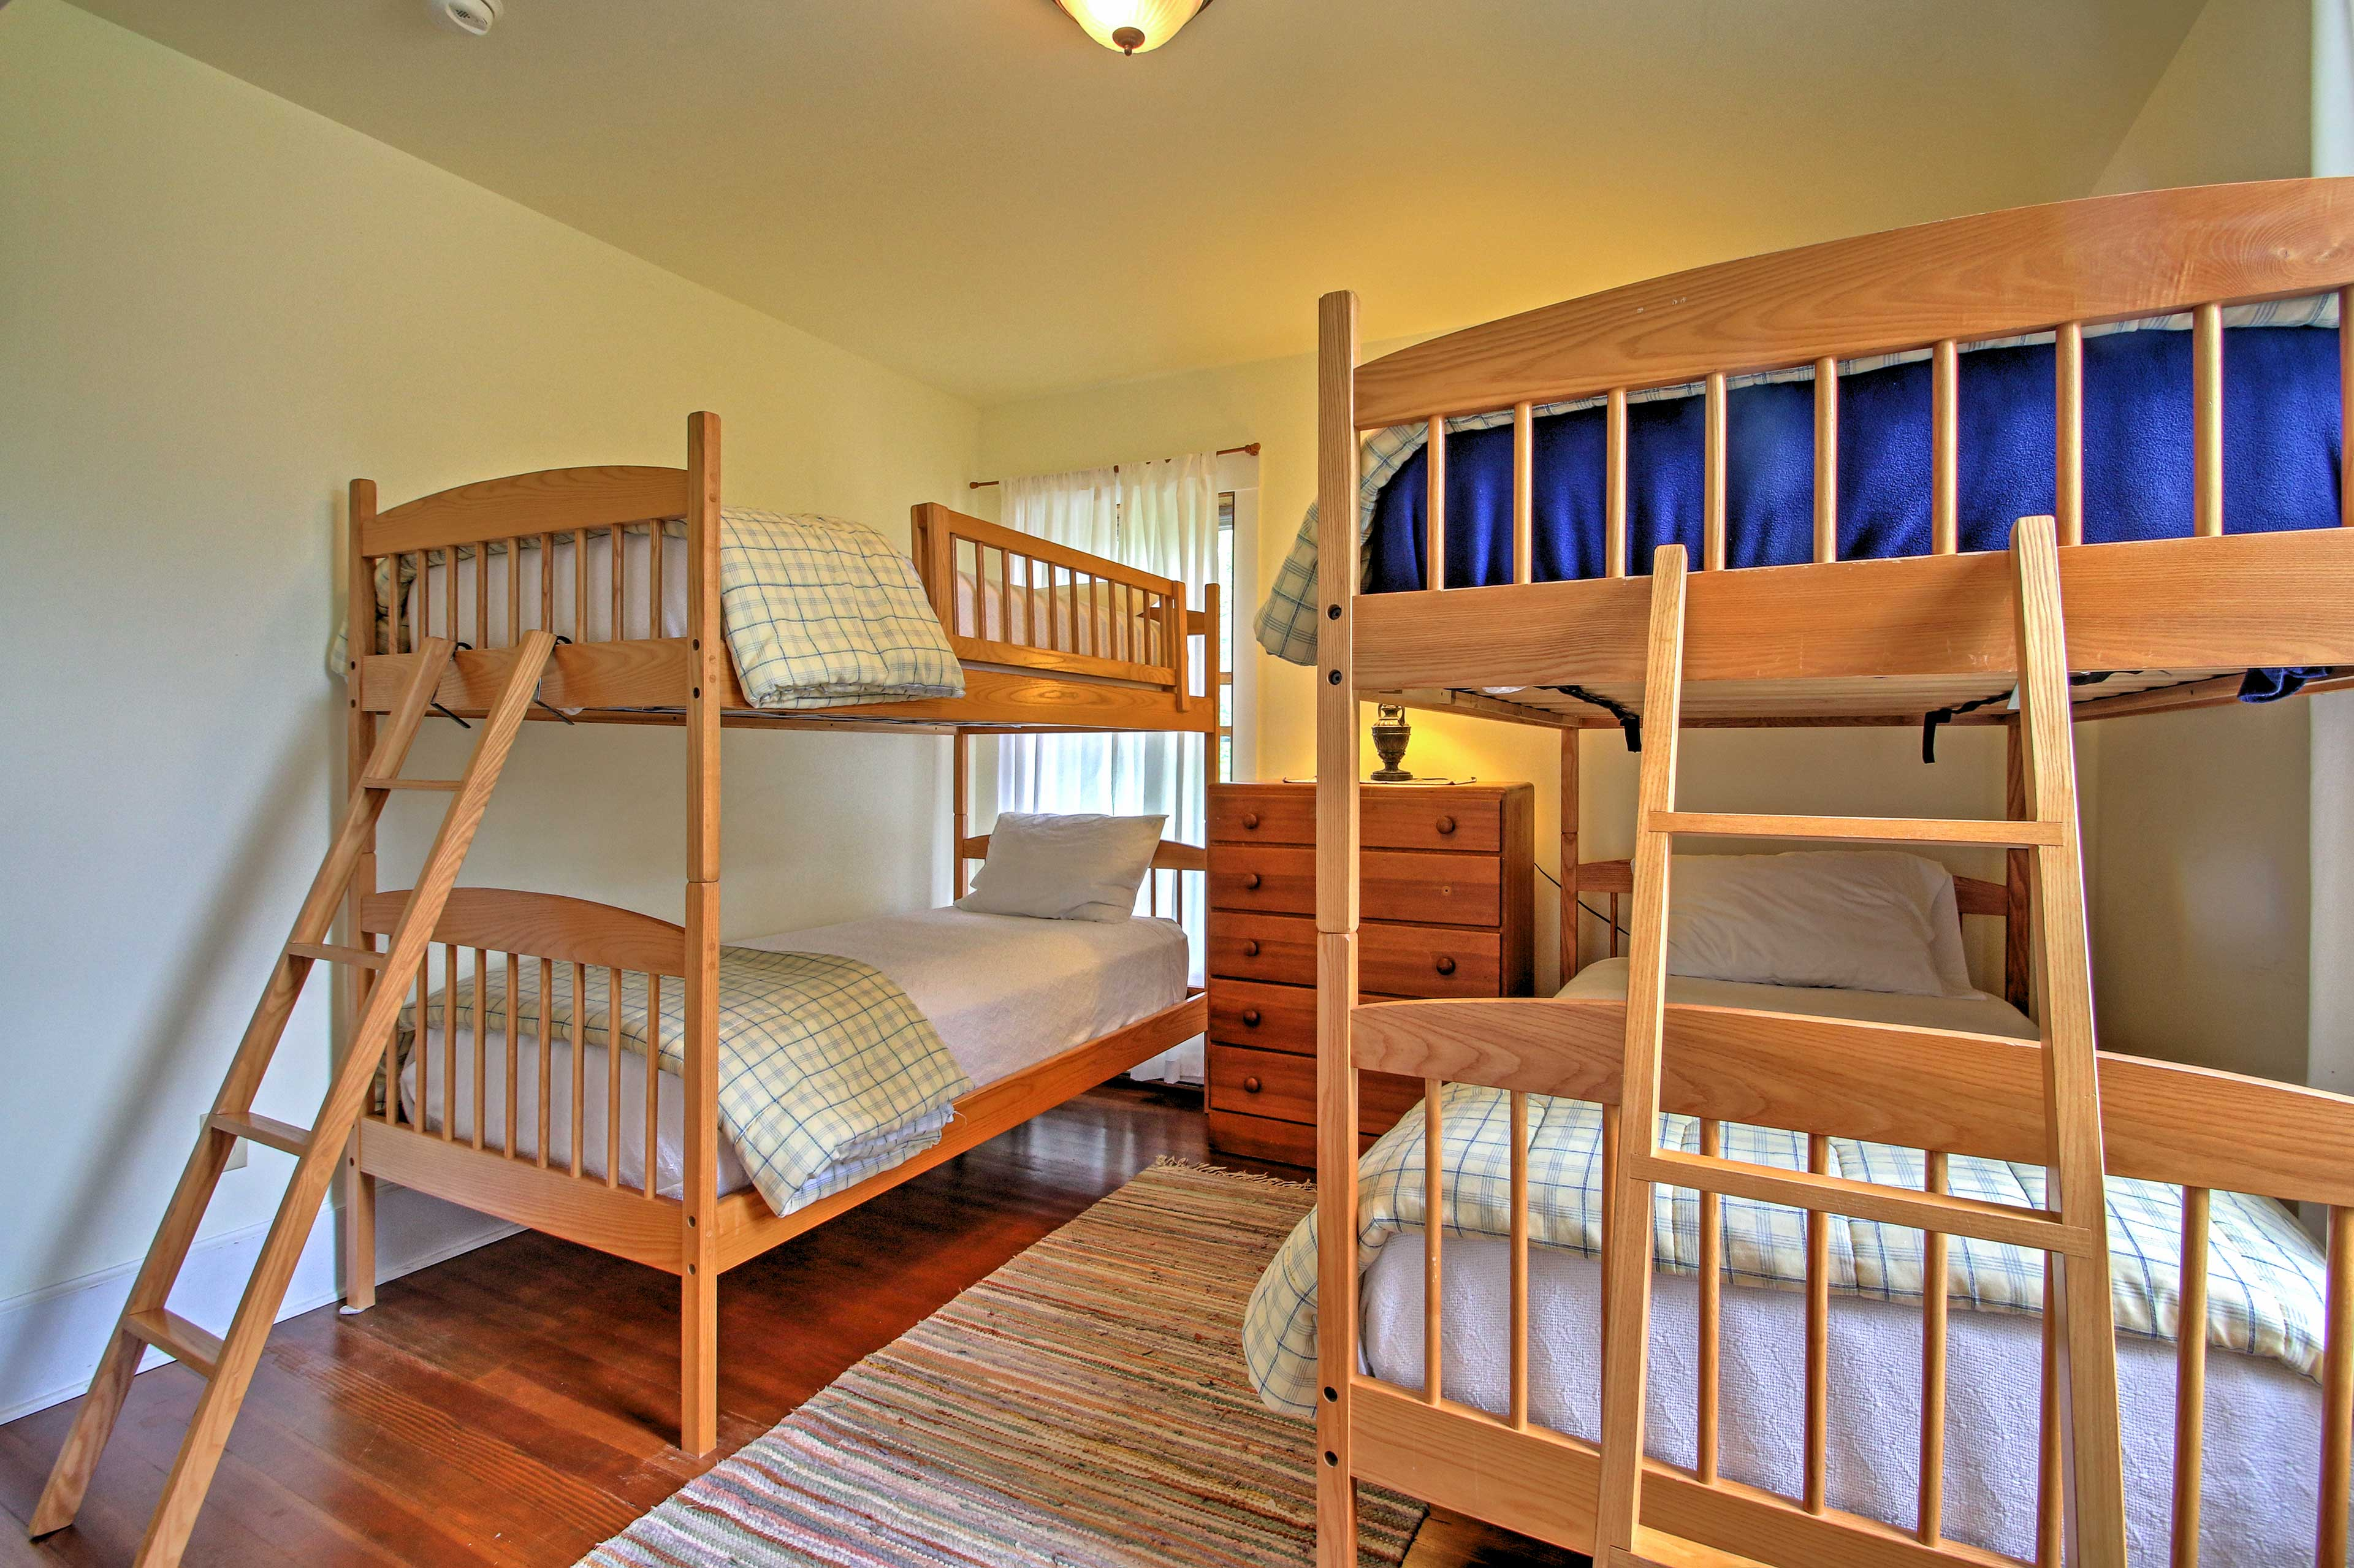 The twin-over-twin bunk beds in this room are fun for kids!